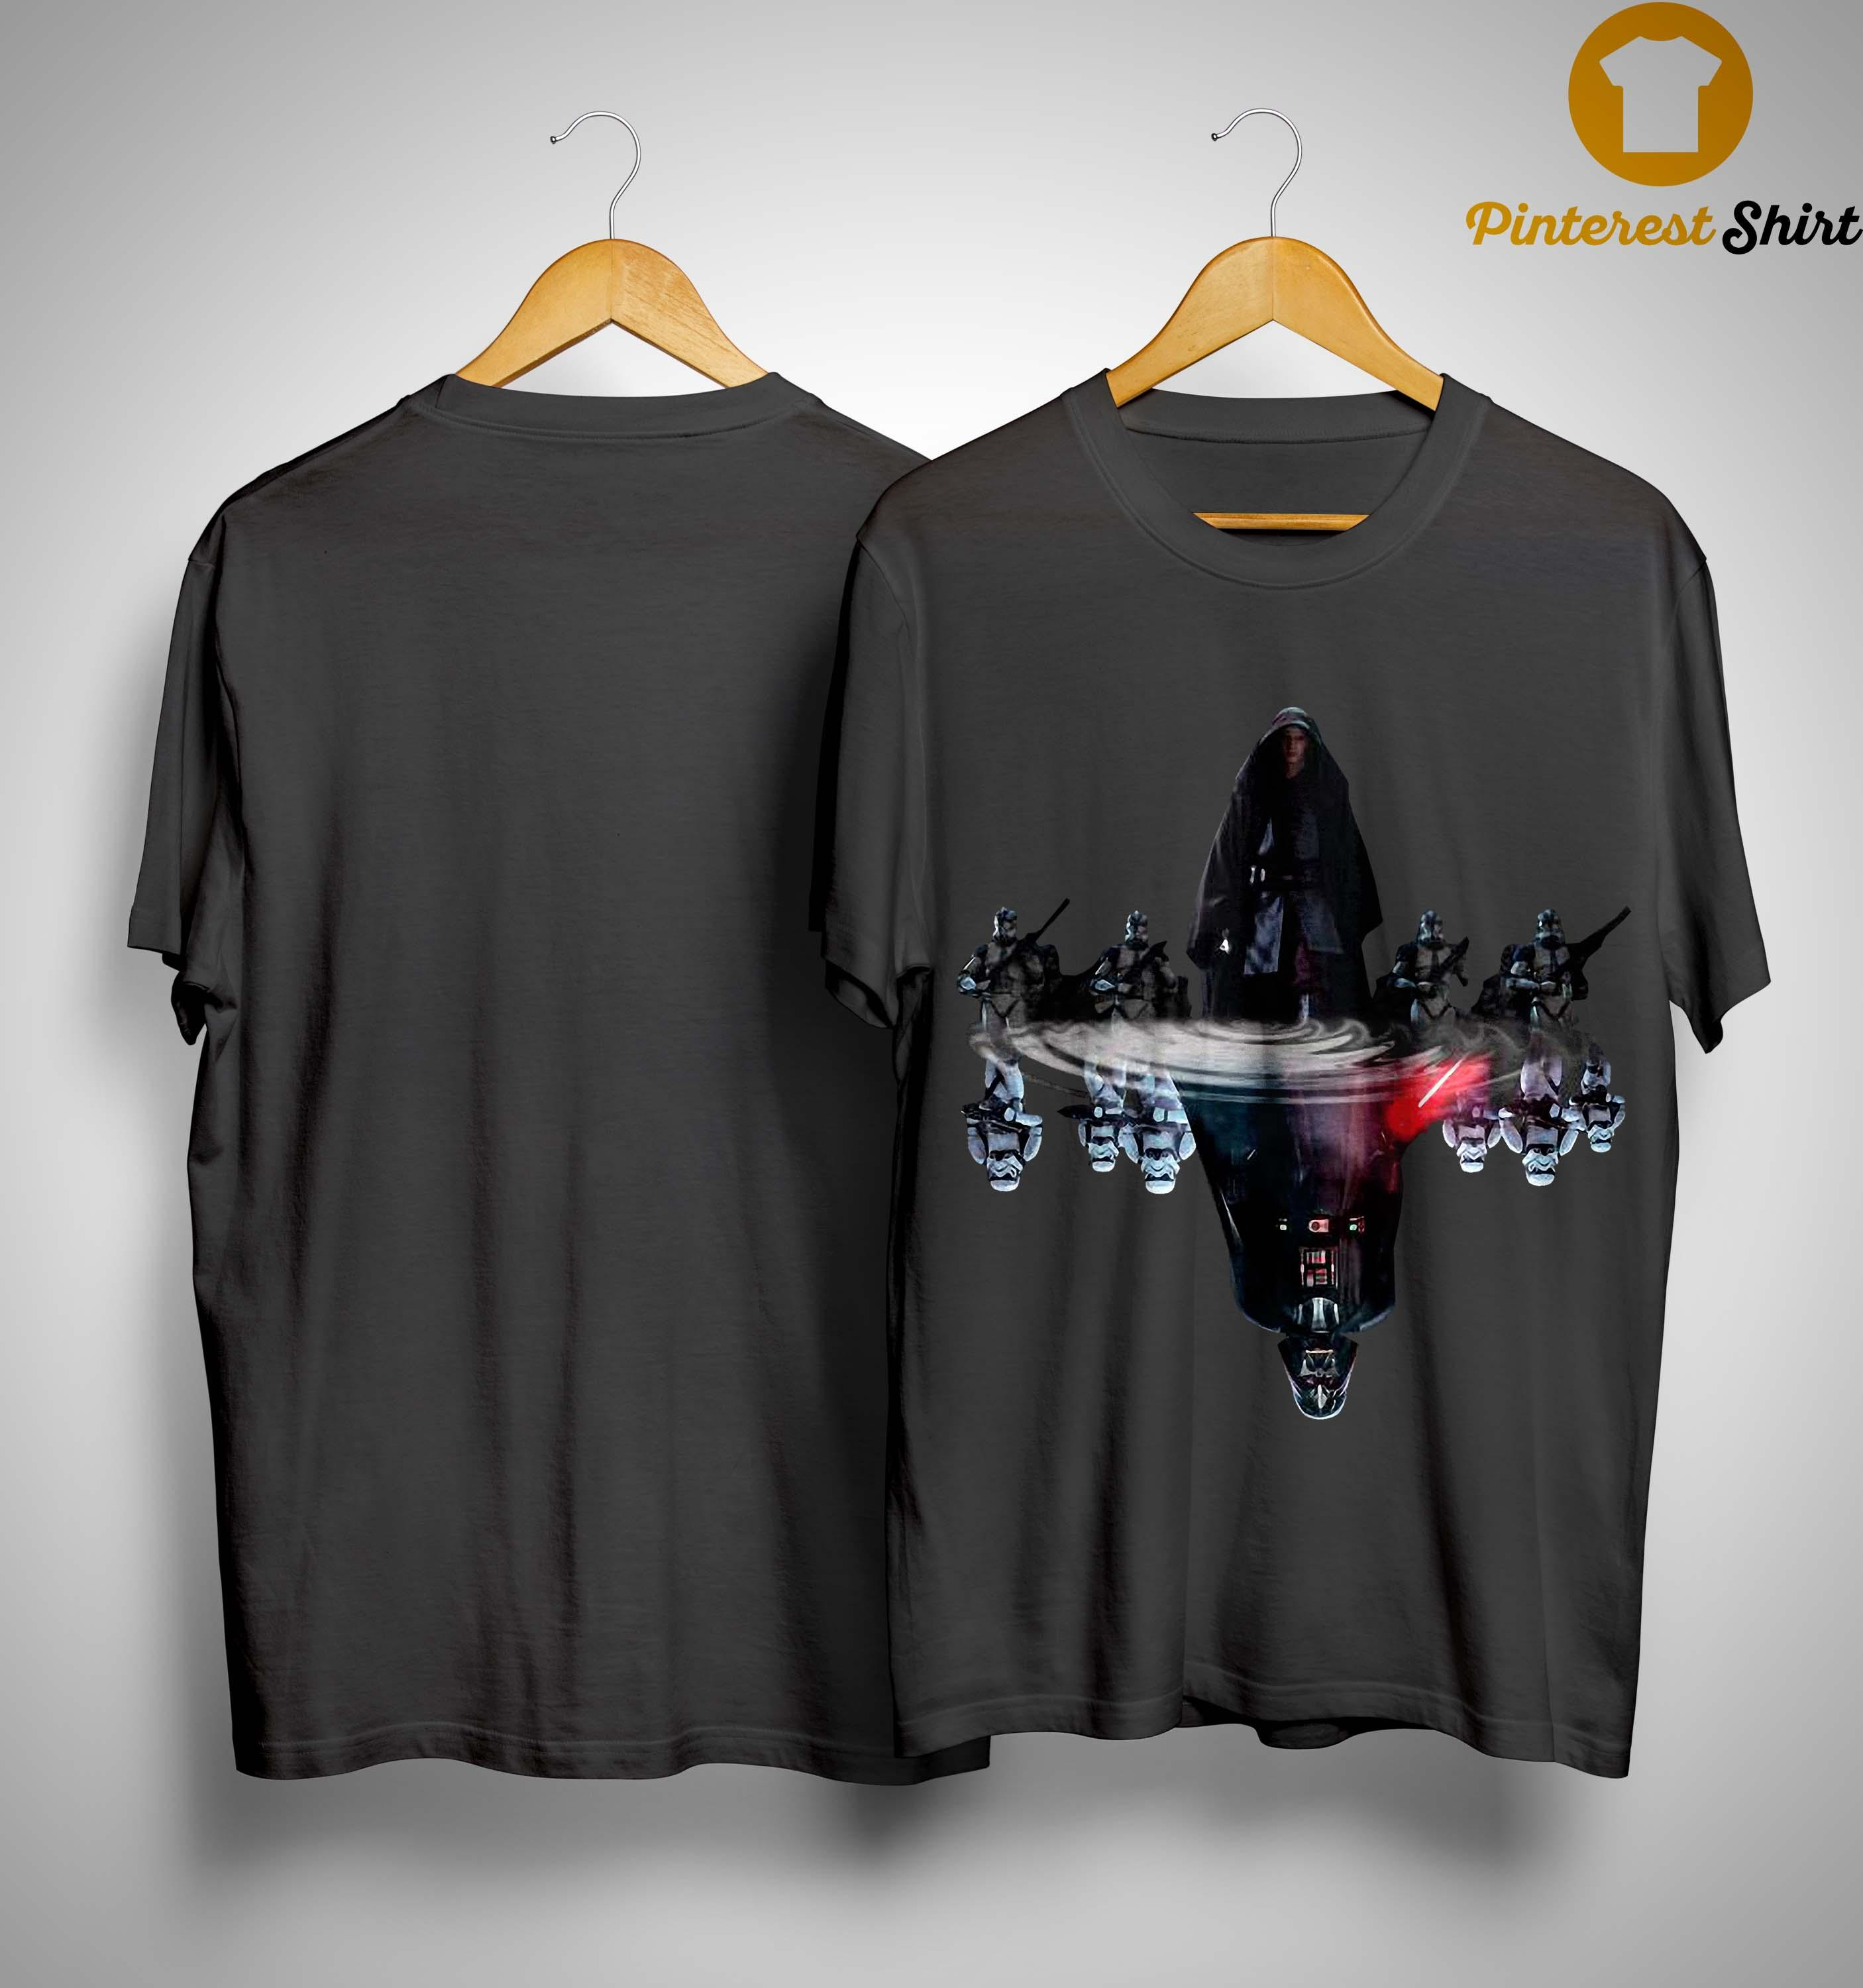 Anakin Skywalker Darth Vader Water Reflection Shirt